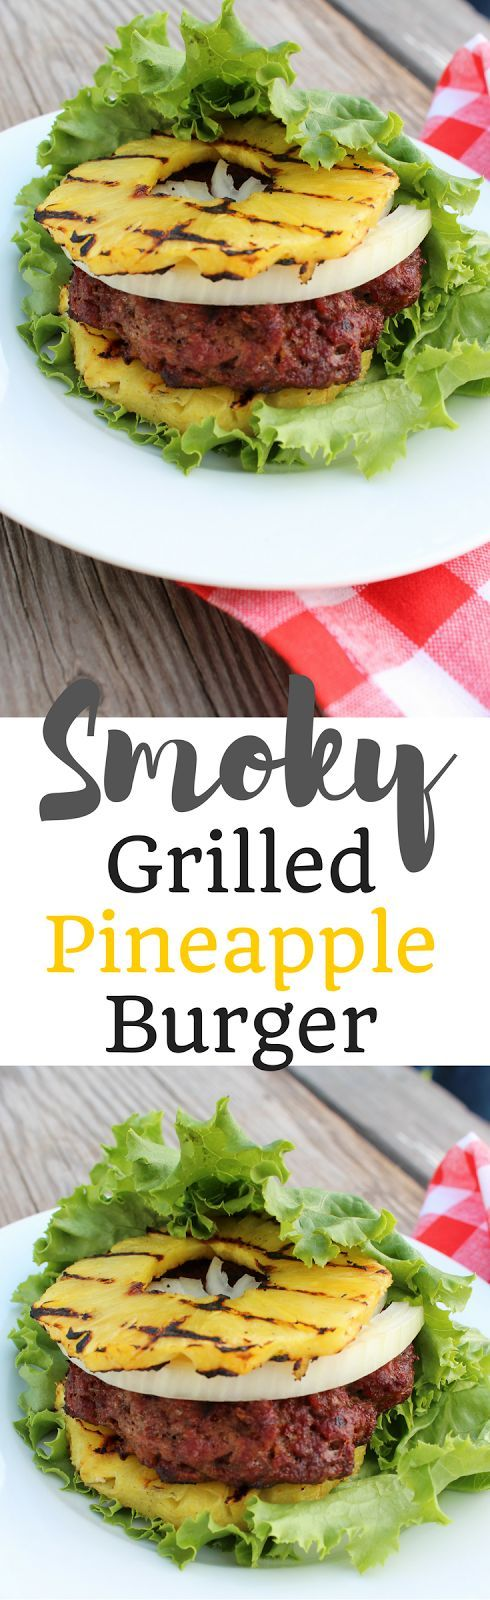 Not just a boring bunless burger. This Smoky Grilled Pineapple Burger is Paleo, Low Carb, Gluten-free, and Primal. And soooooo good!